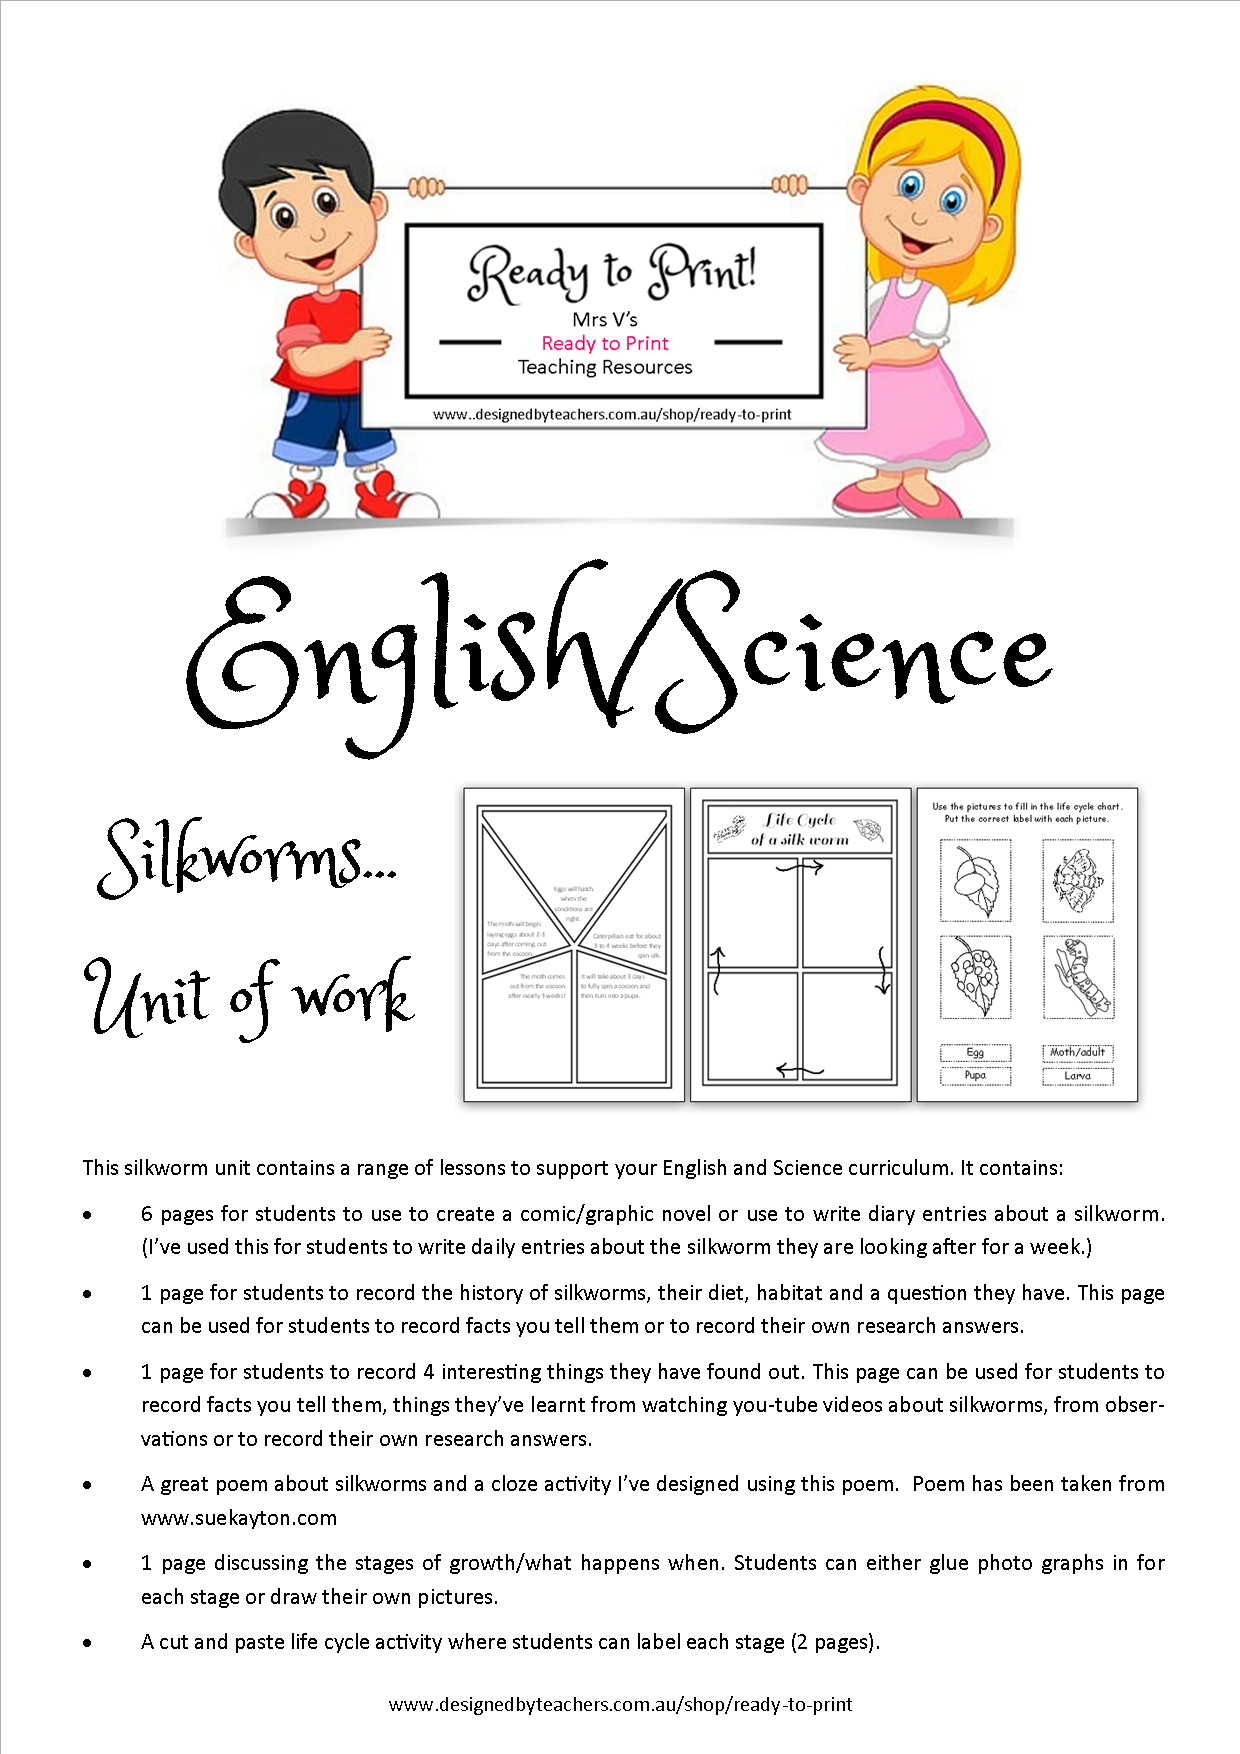 worksheet Silkworm Life Cycle Worksheet silkworms unit life cycle graphic novel and poem students dbt including cycles a that can write about